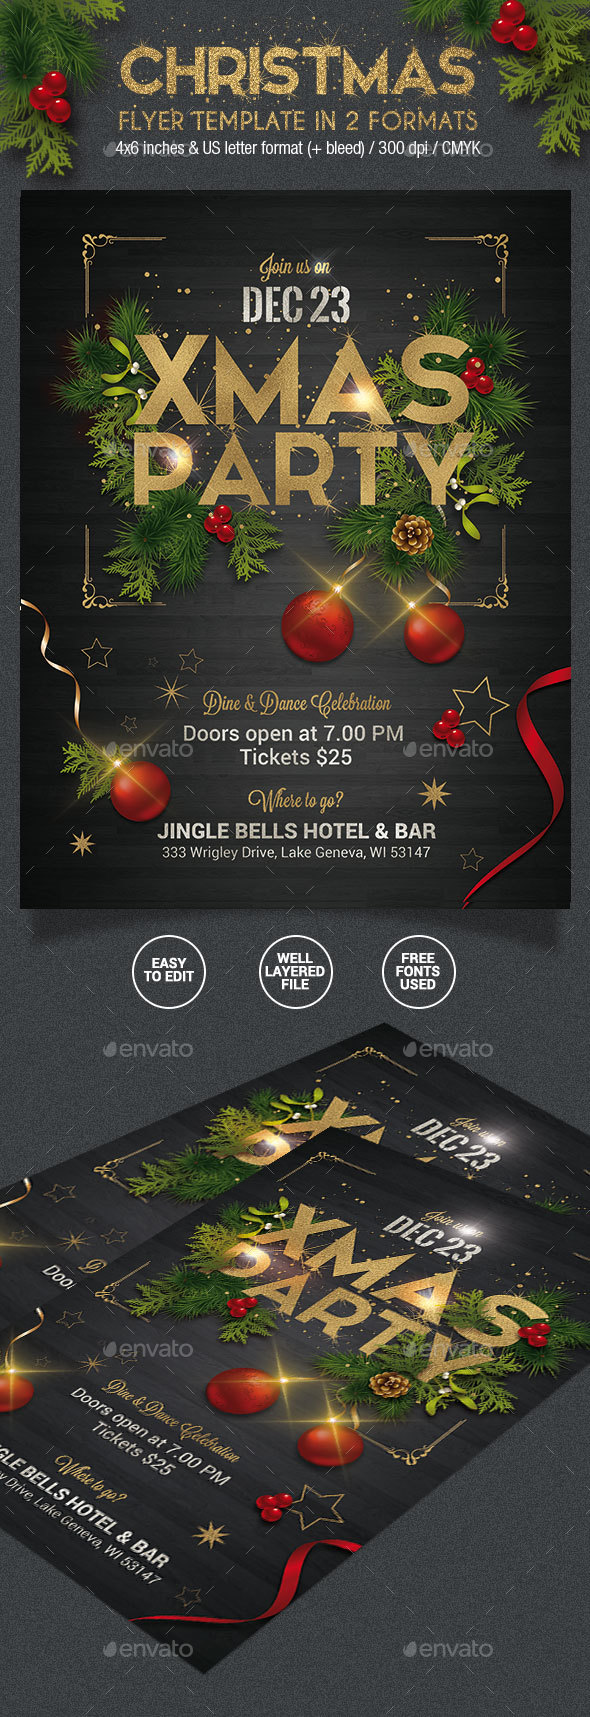 Christmas Party Flyer - 2 Formats